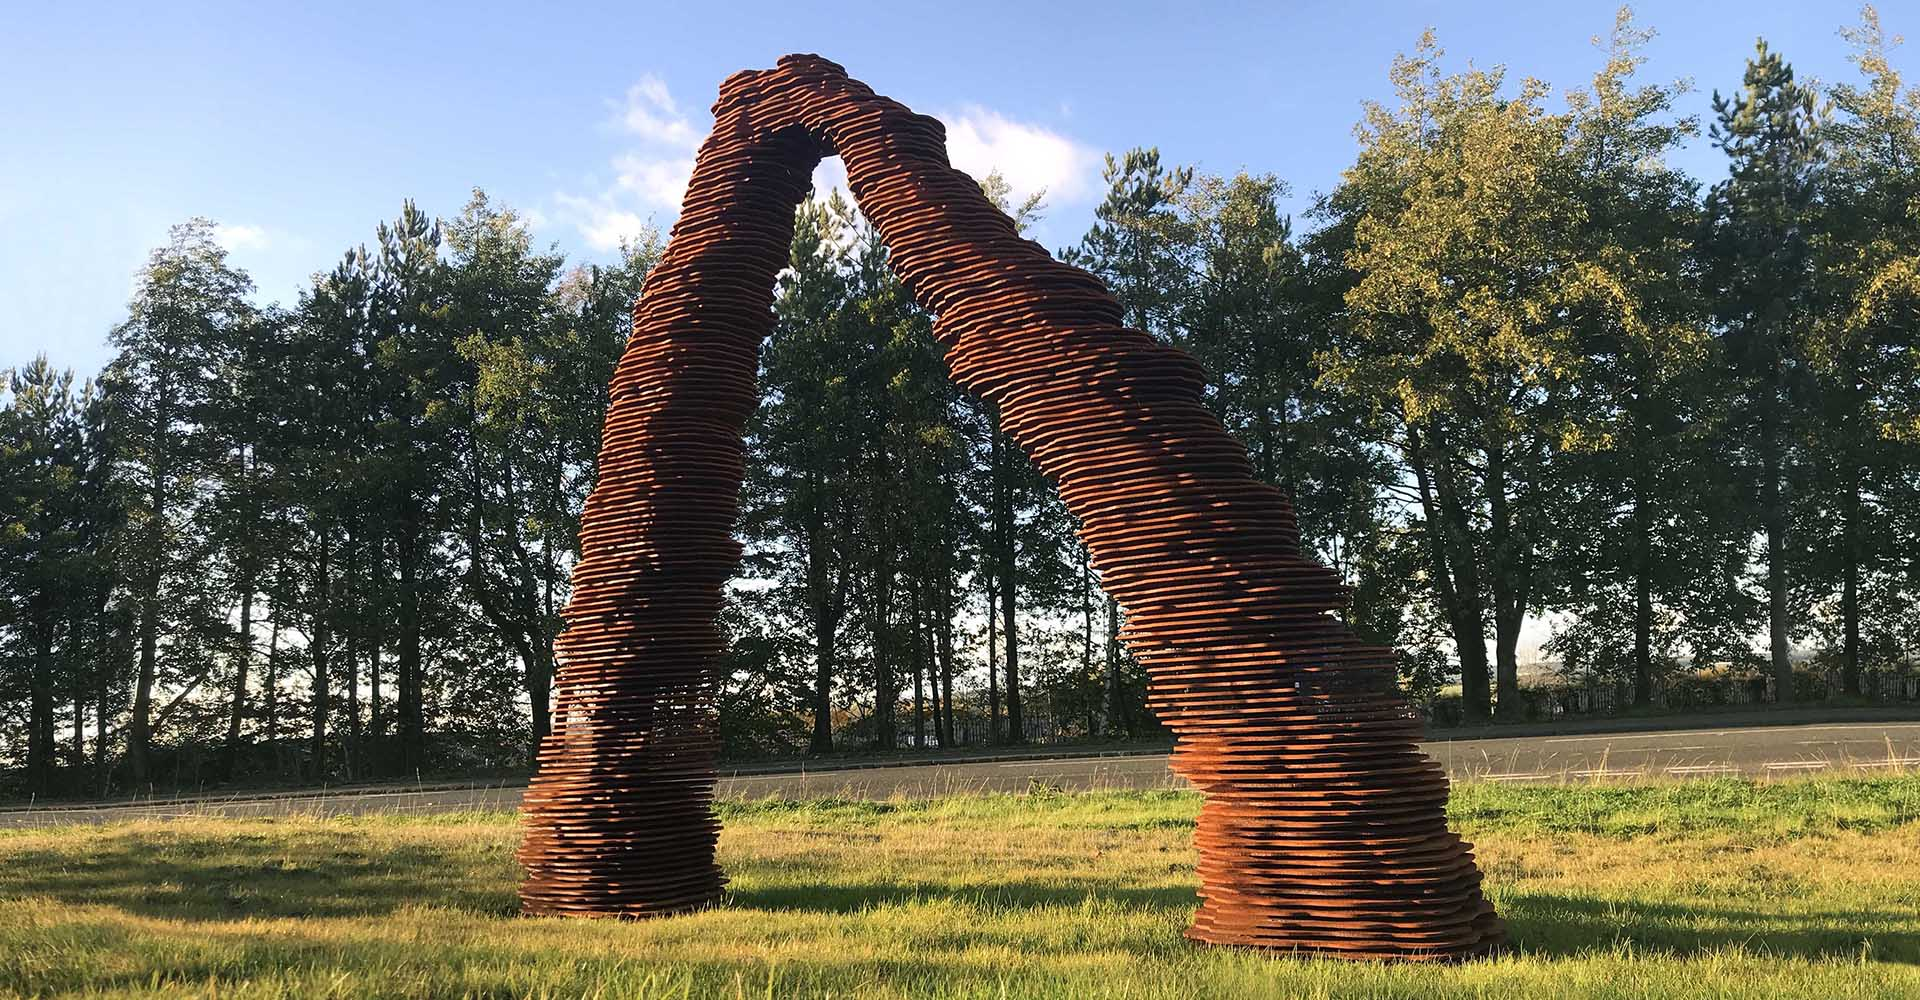 Corten steel gateway arch in West Calder large metal art sculpture by artist Kate Ive